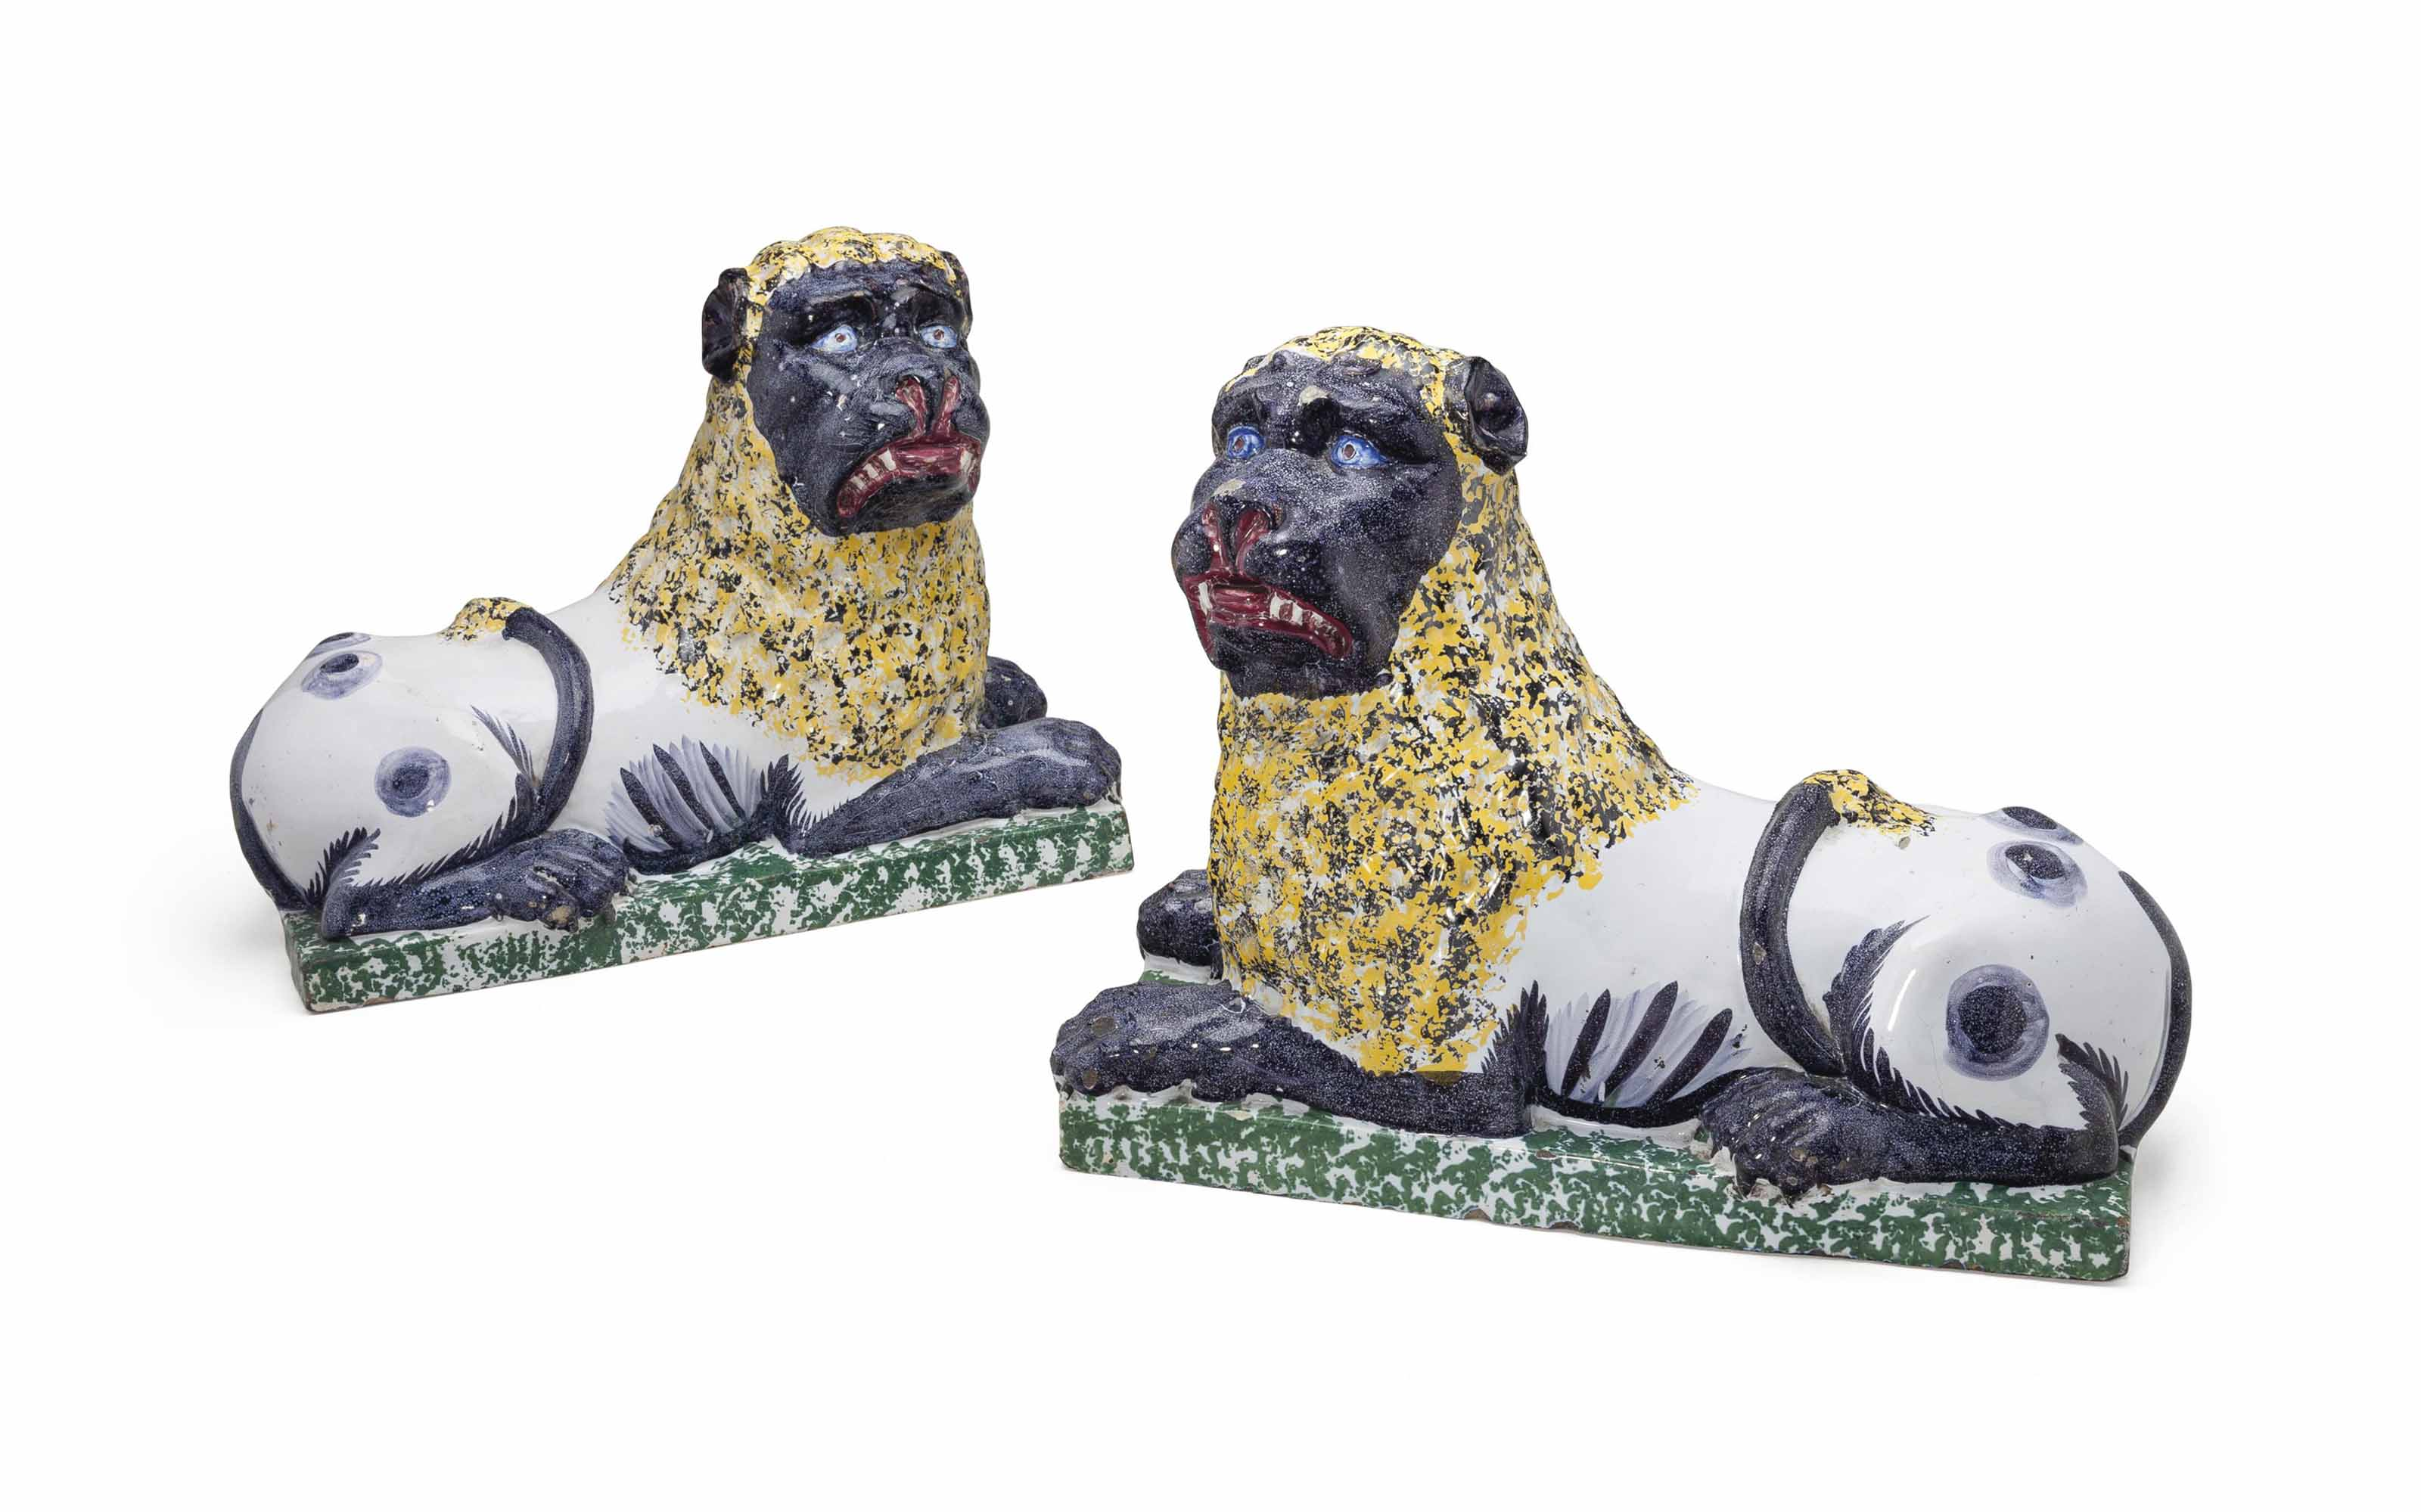 A LARGE PAIR OF FRENCH FAIENCE MODELS OF RECUMBENT LIONS